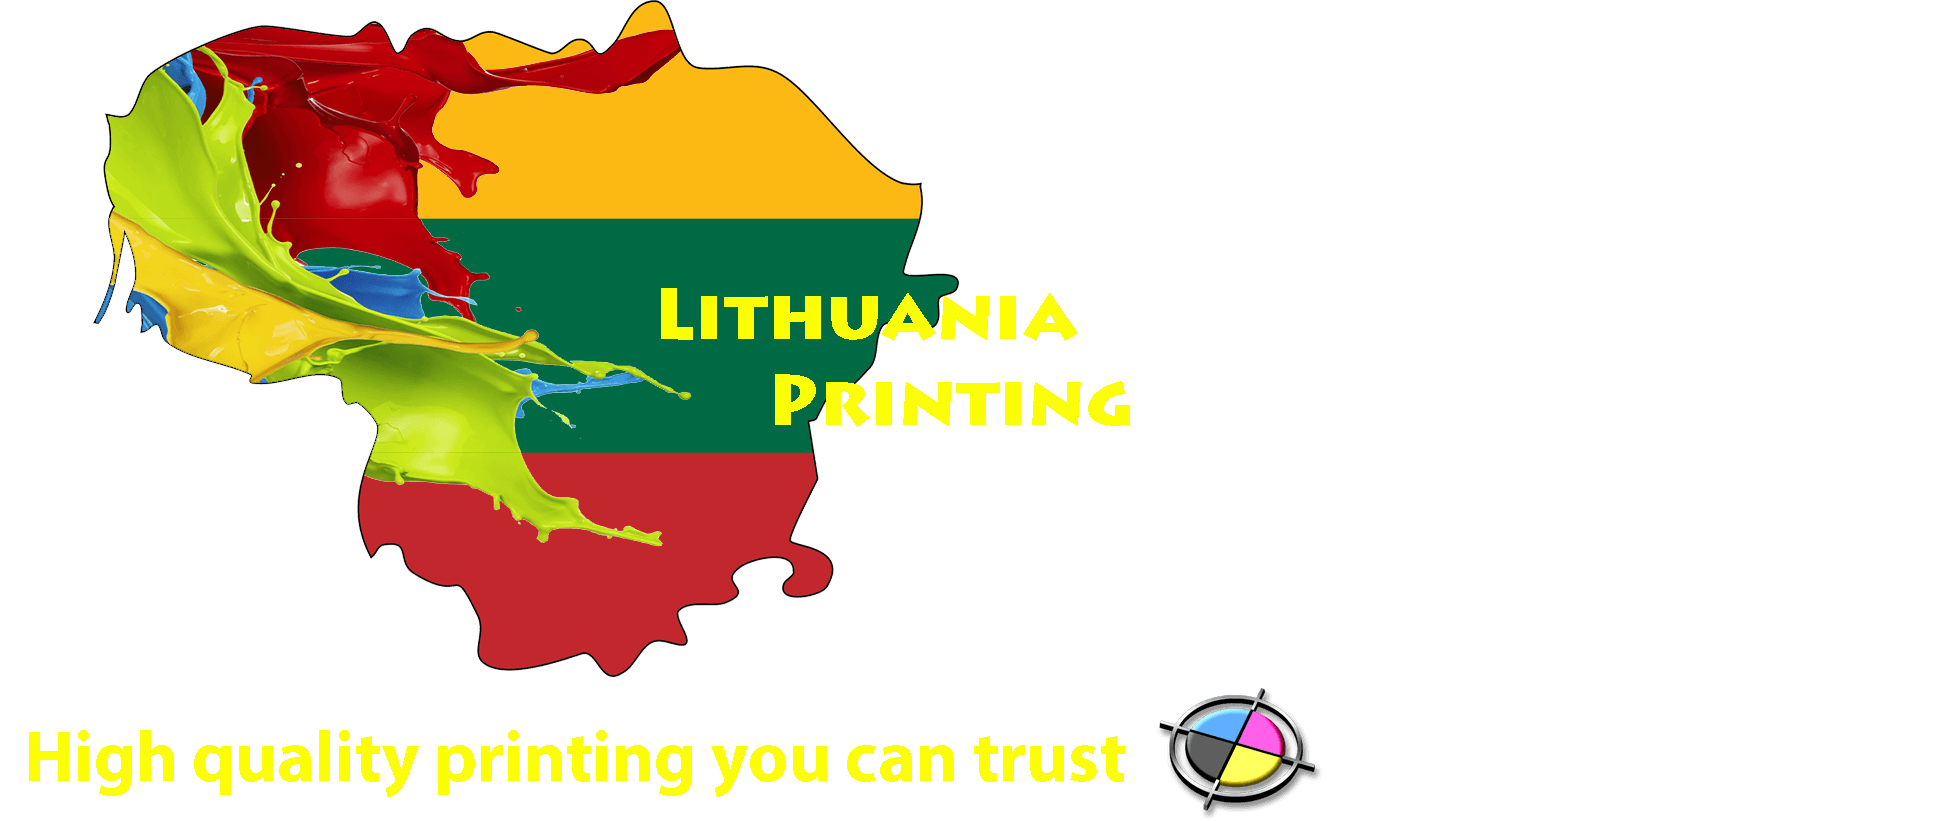 Lithuania Printing – High Quality Printing You can Trust